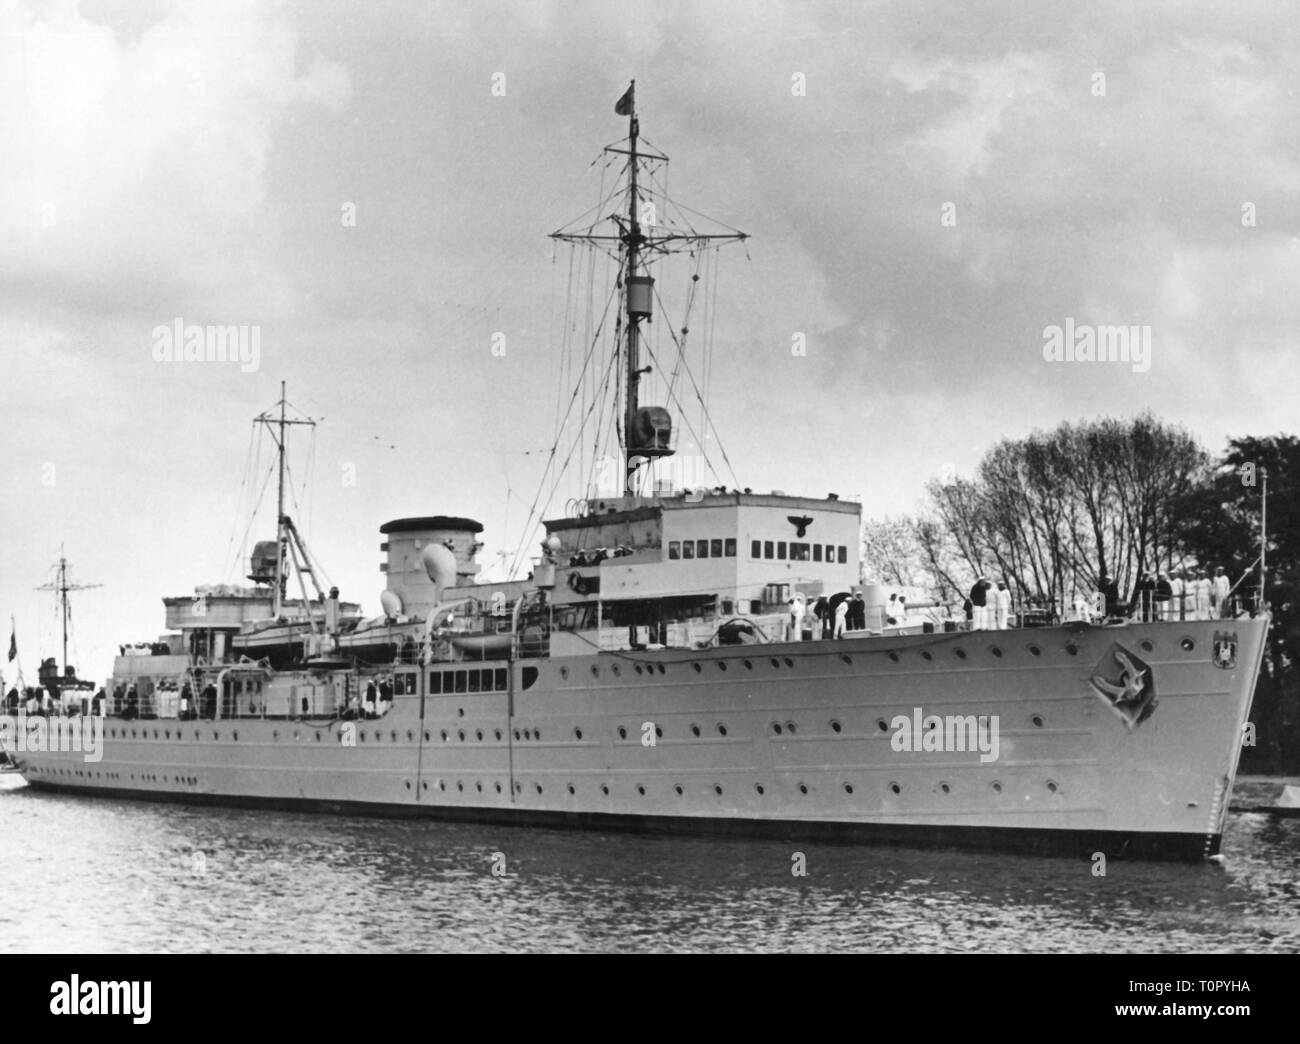 Nazism / National Socialism, military, navy, ships, submarine tender Saar, view, late 1930s, Additional-Rights-Clearance-Info-Not-Available Stock Photo